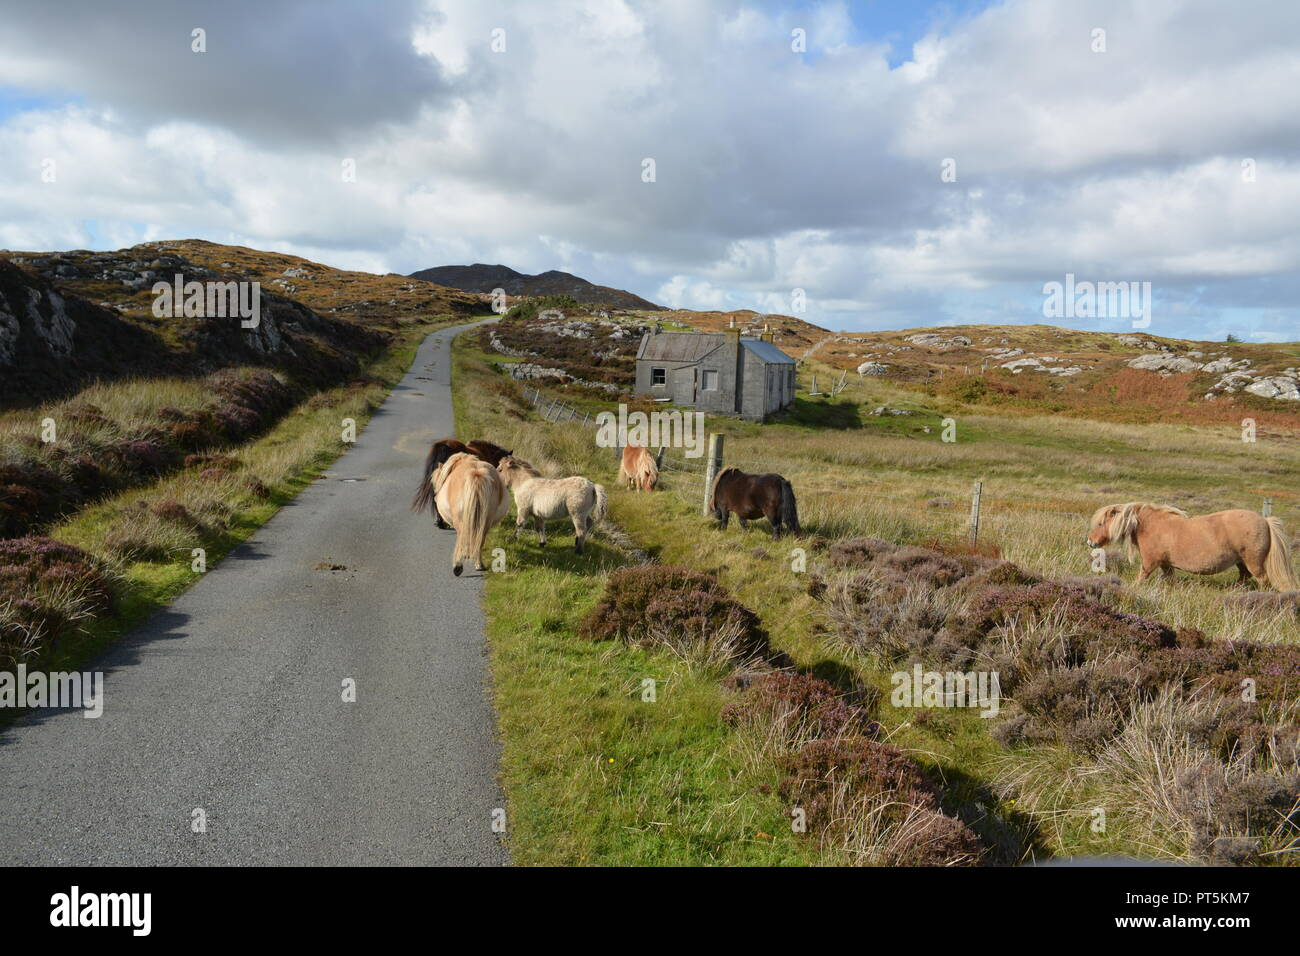 Wild ponies close to remote road on moorland near to Loch Druidibeg National Nature Reserve on South Uist Outer Hebrides Western Isles Scotland UK - Stock Image